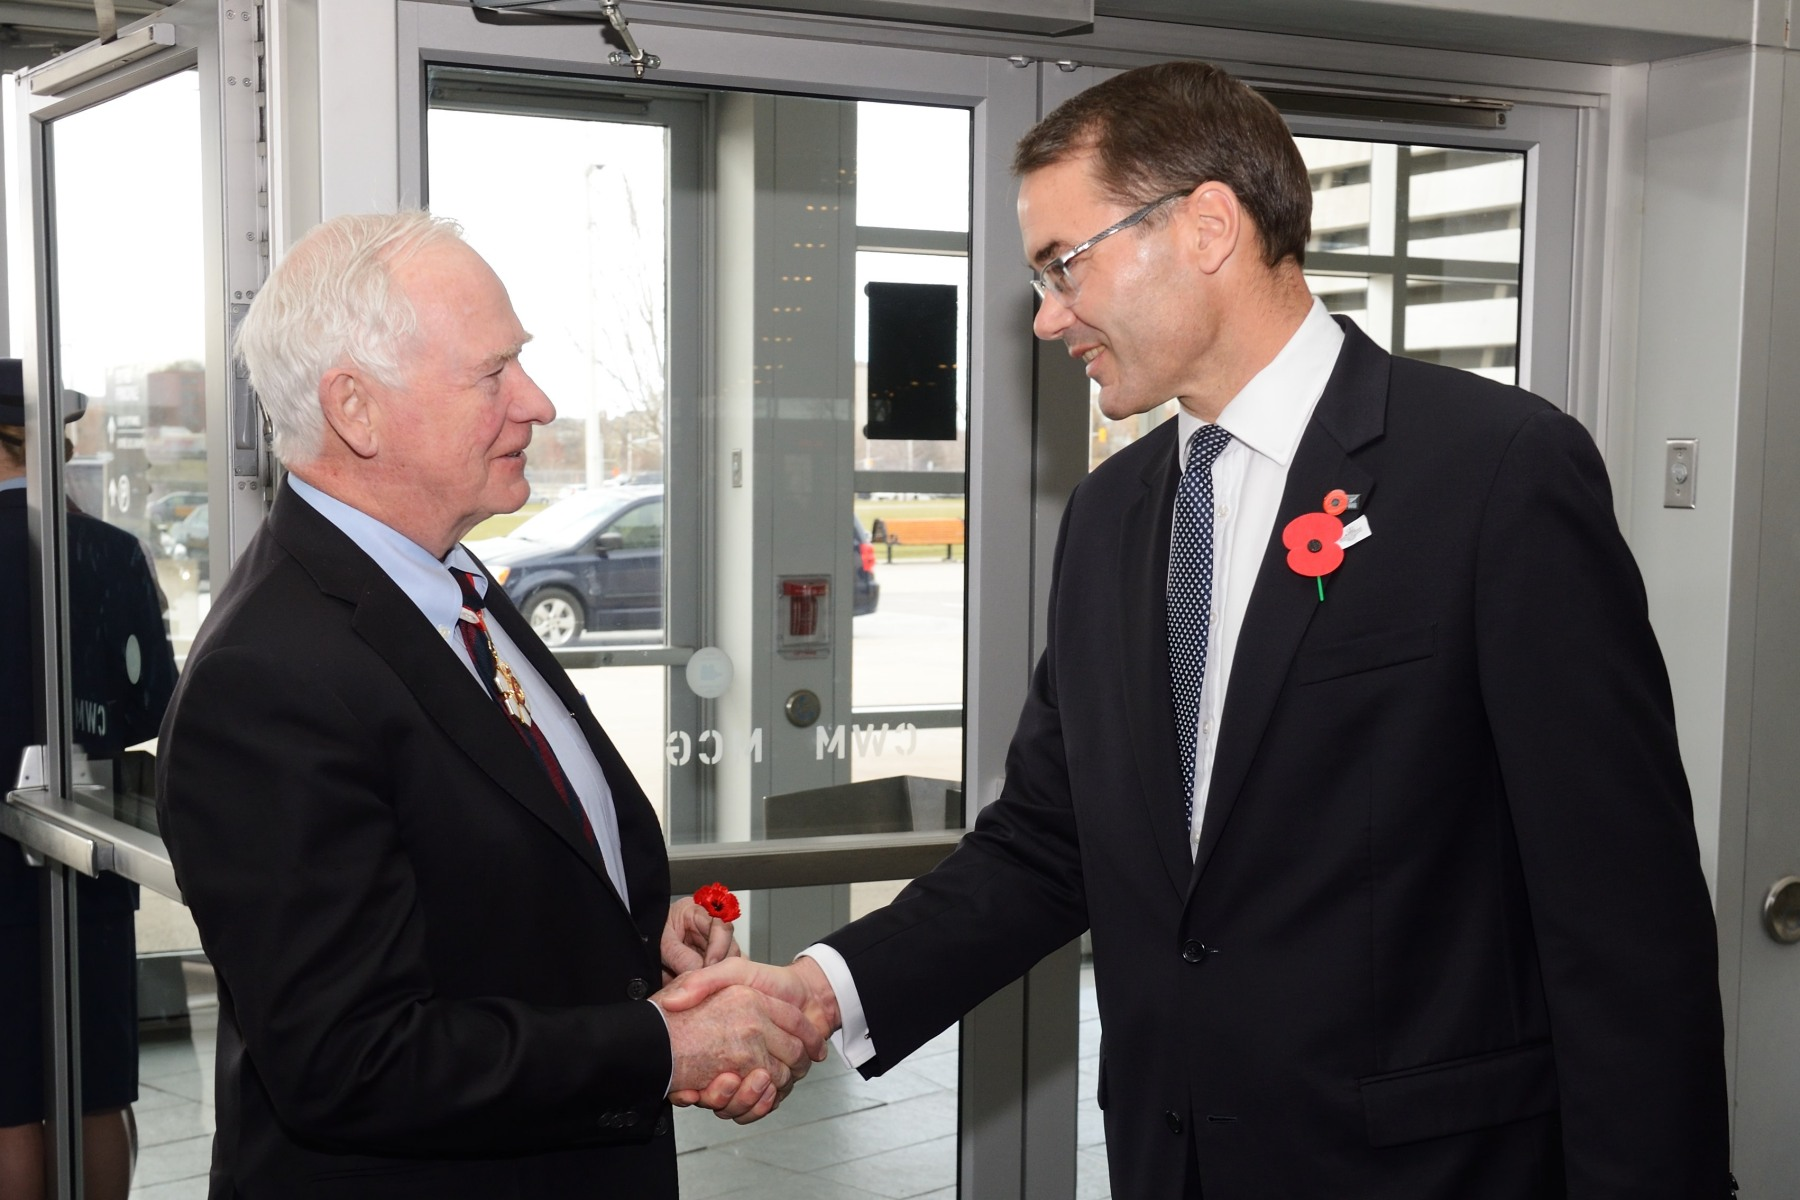 His Excellency the Right Honourable David Johnston, Governor General of Canada, attended the Anzac Centenary Service. Upon his arrival, he was greeted by His Excellency Simon Tucker, New Zealand High Commissioner.